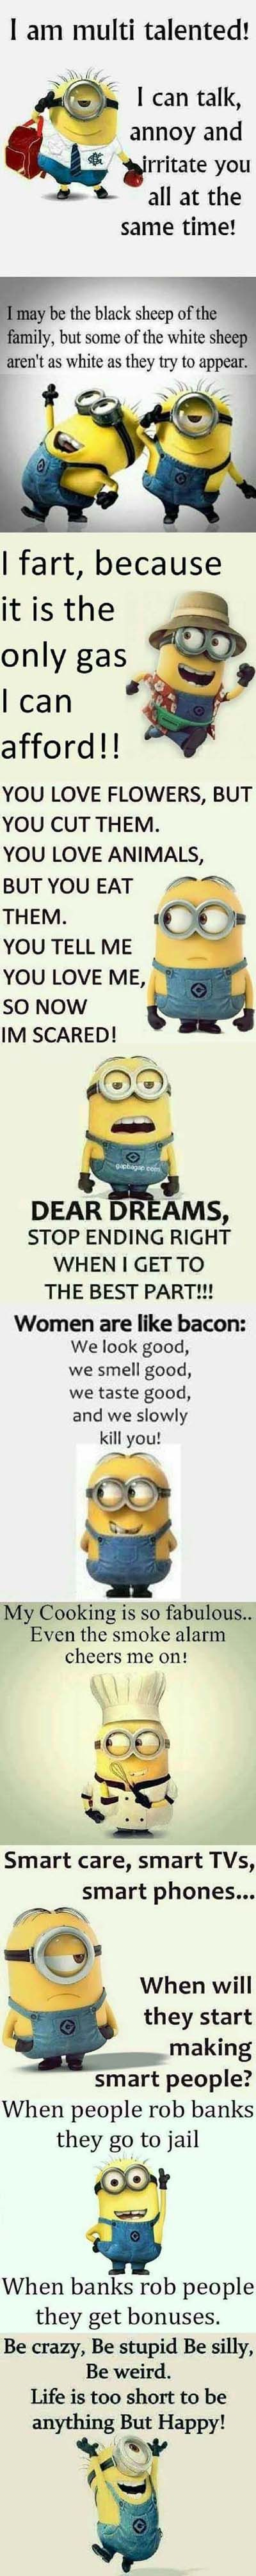 Funny Minions on Life and Love